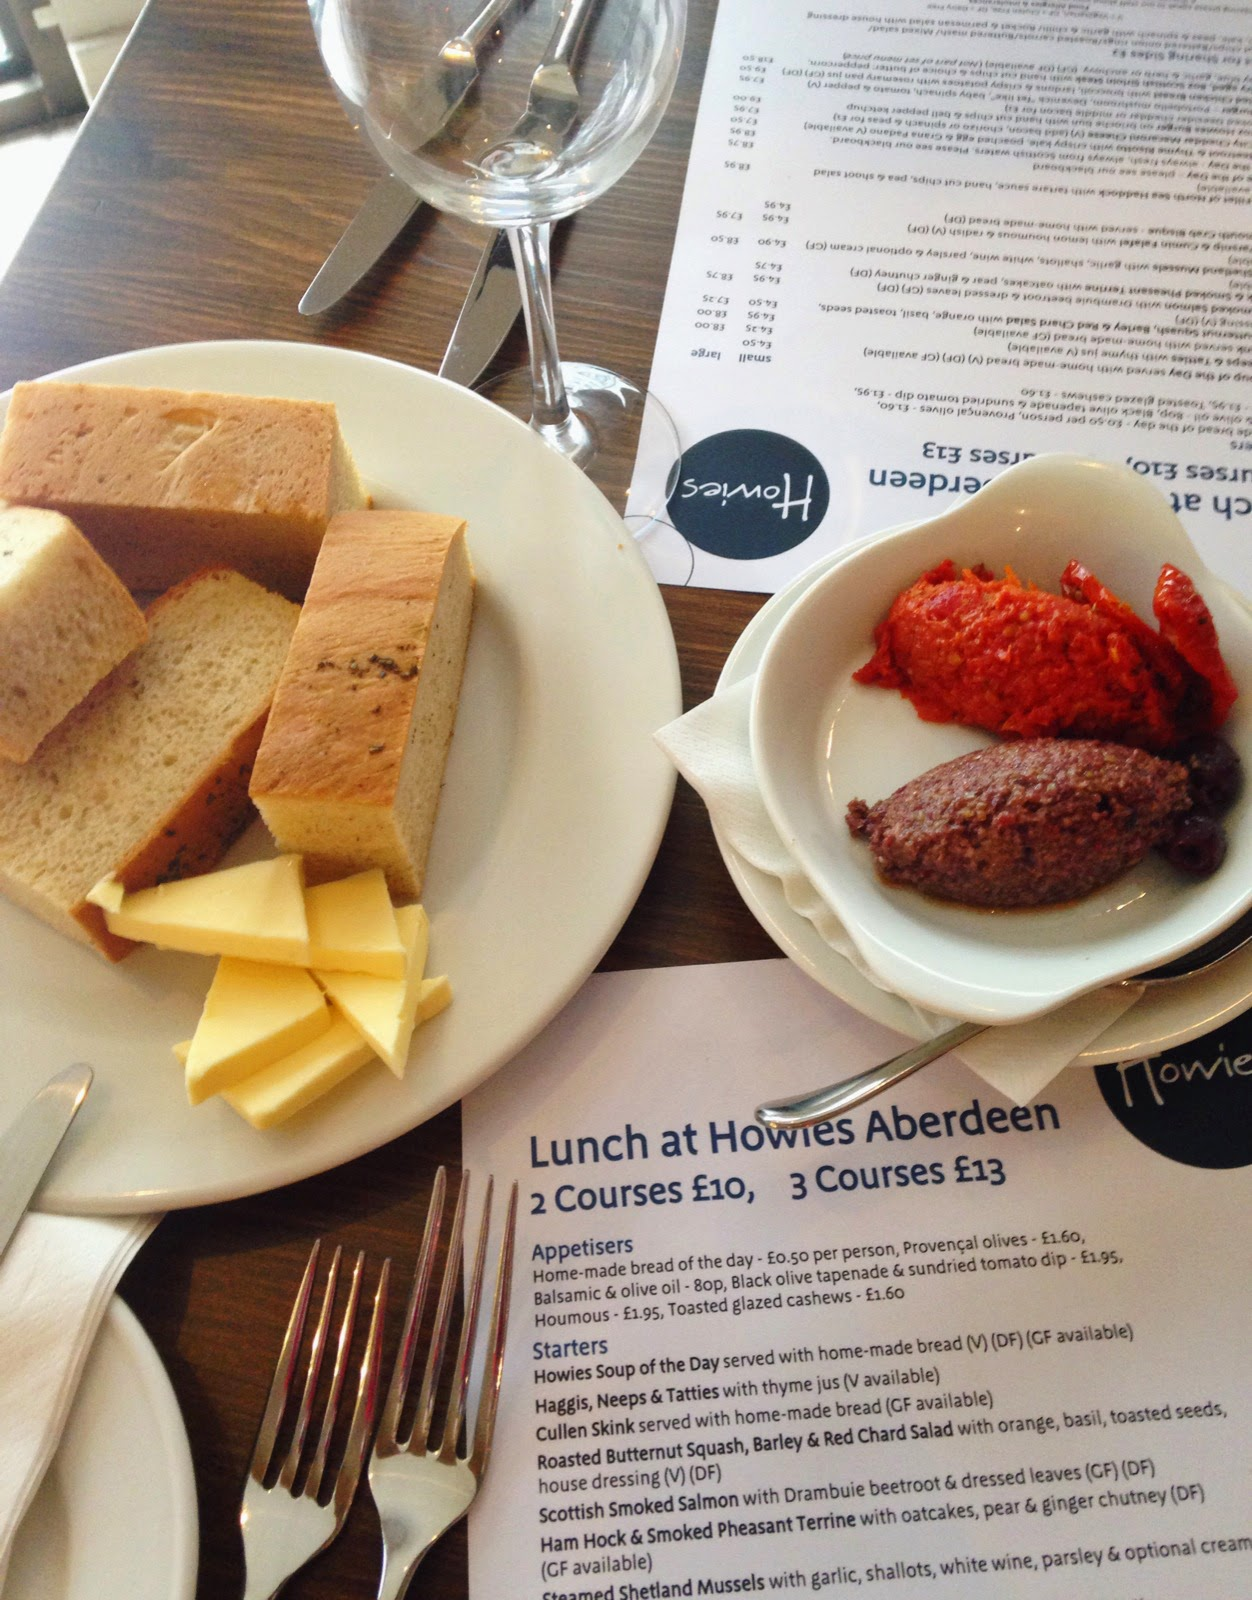 Lunch menu at Howies restaurant Aberdeen